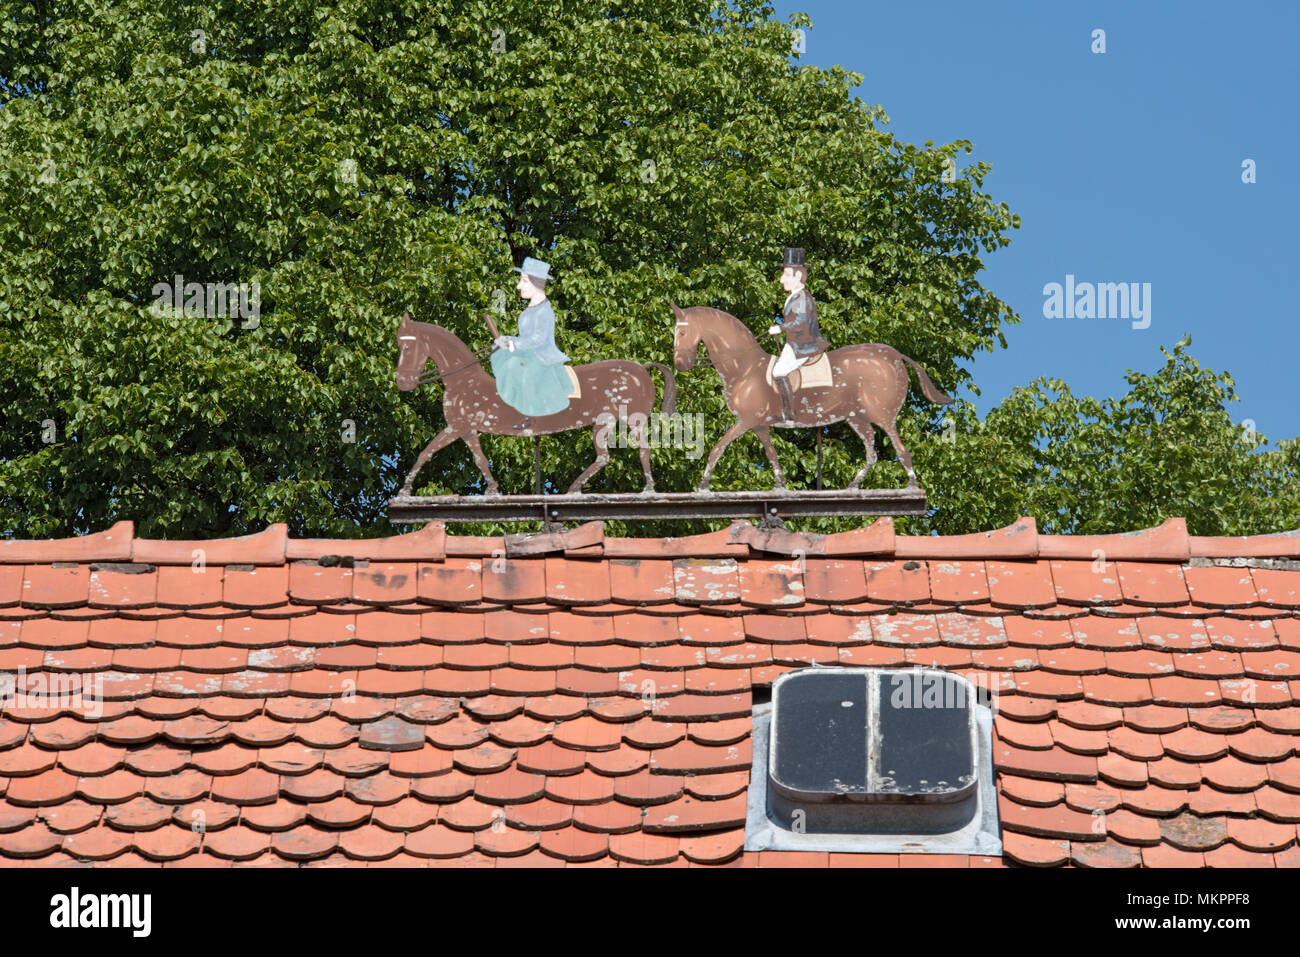 Metal figures two riders, man and woman on the roof of a estate - Stock Image